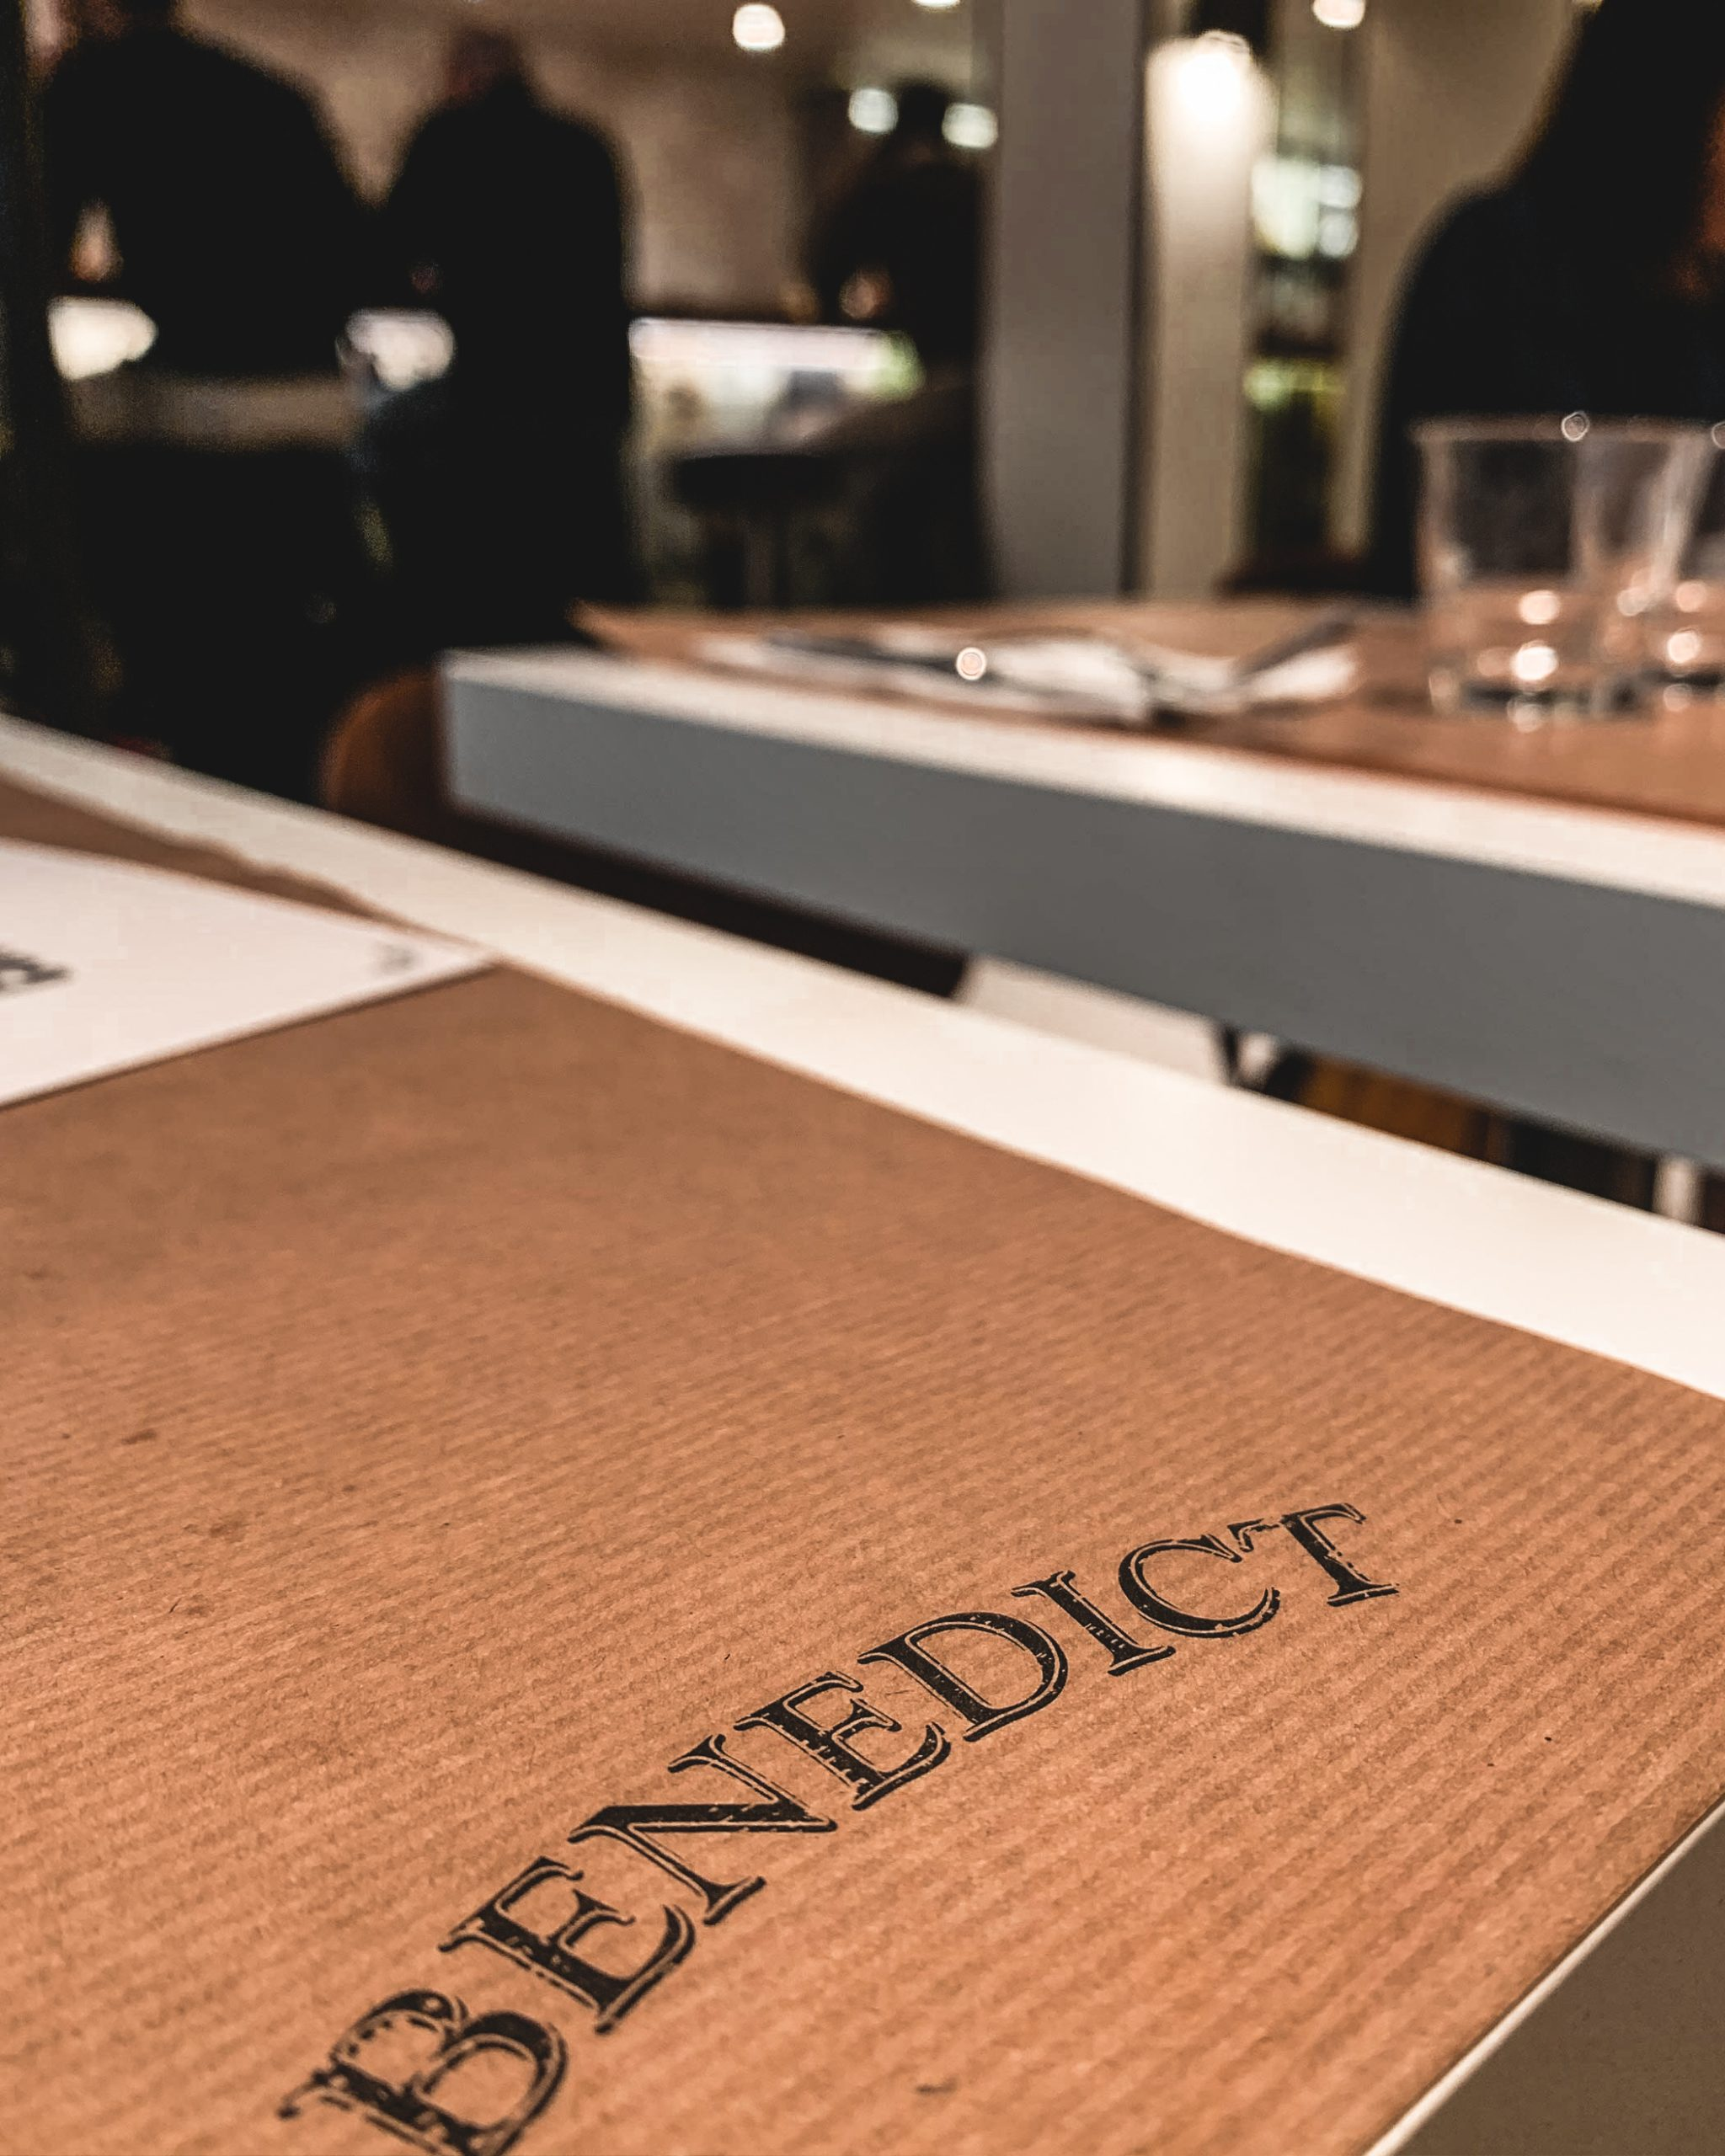 Benedict Restaurant Paris ? 19 rue Sainte Croix de la Bretonnerie 75004 Paris Open Everyday ? 12h-15h / 19h30-23h, le week-end 11h-17h /19h-23h